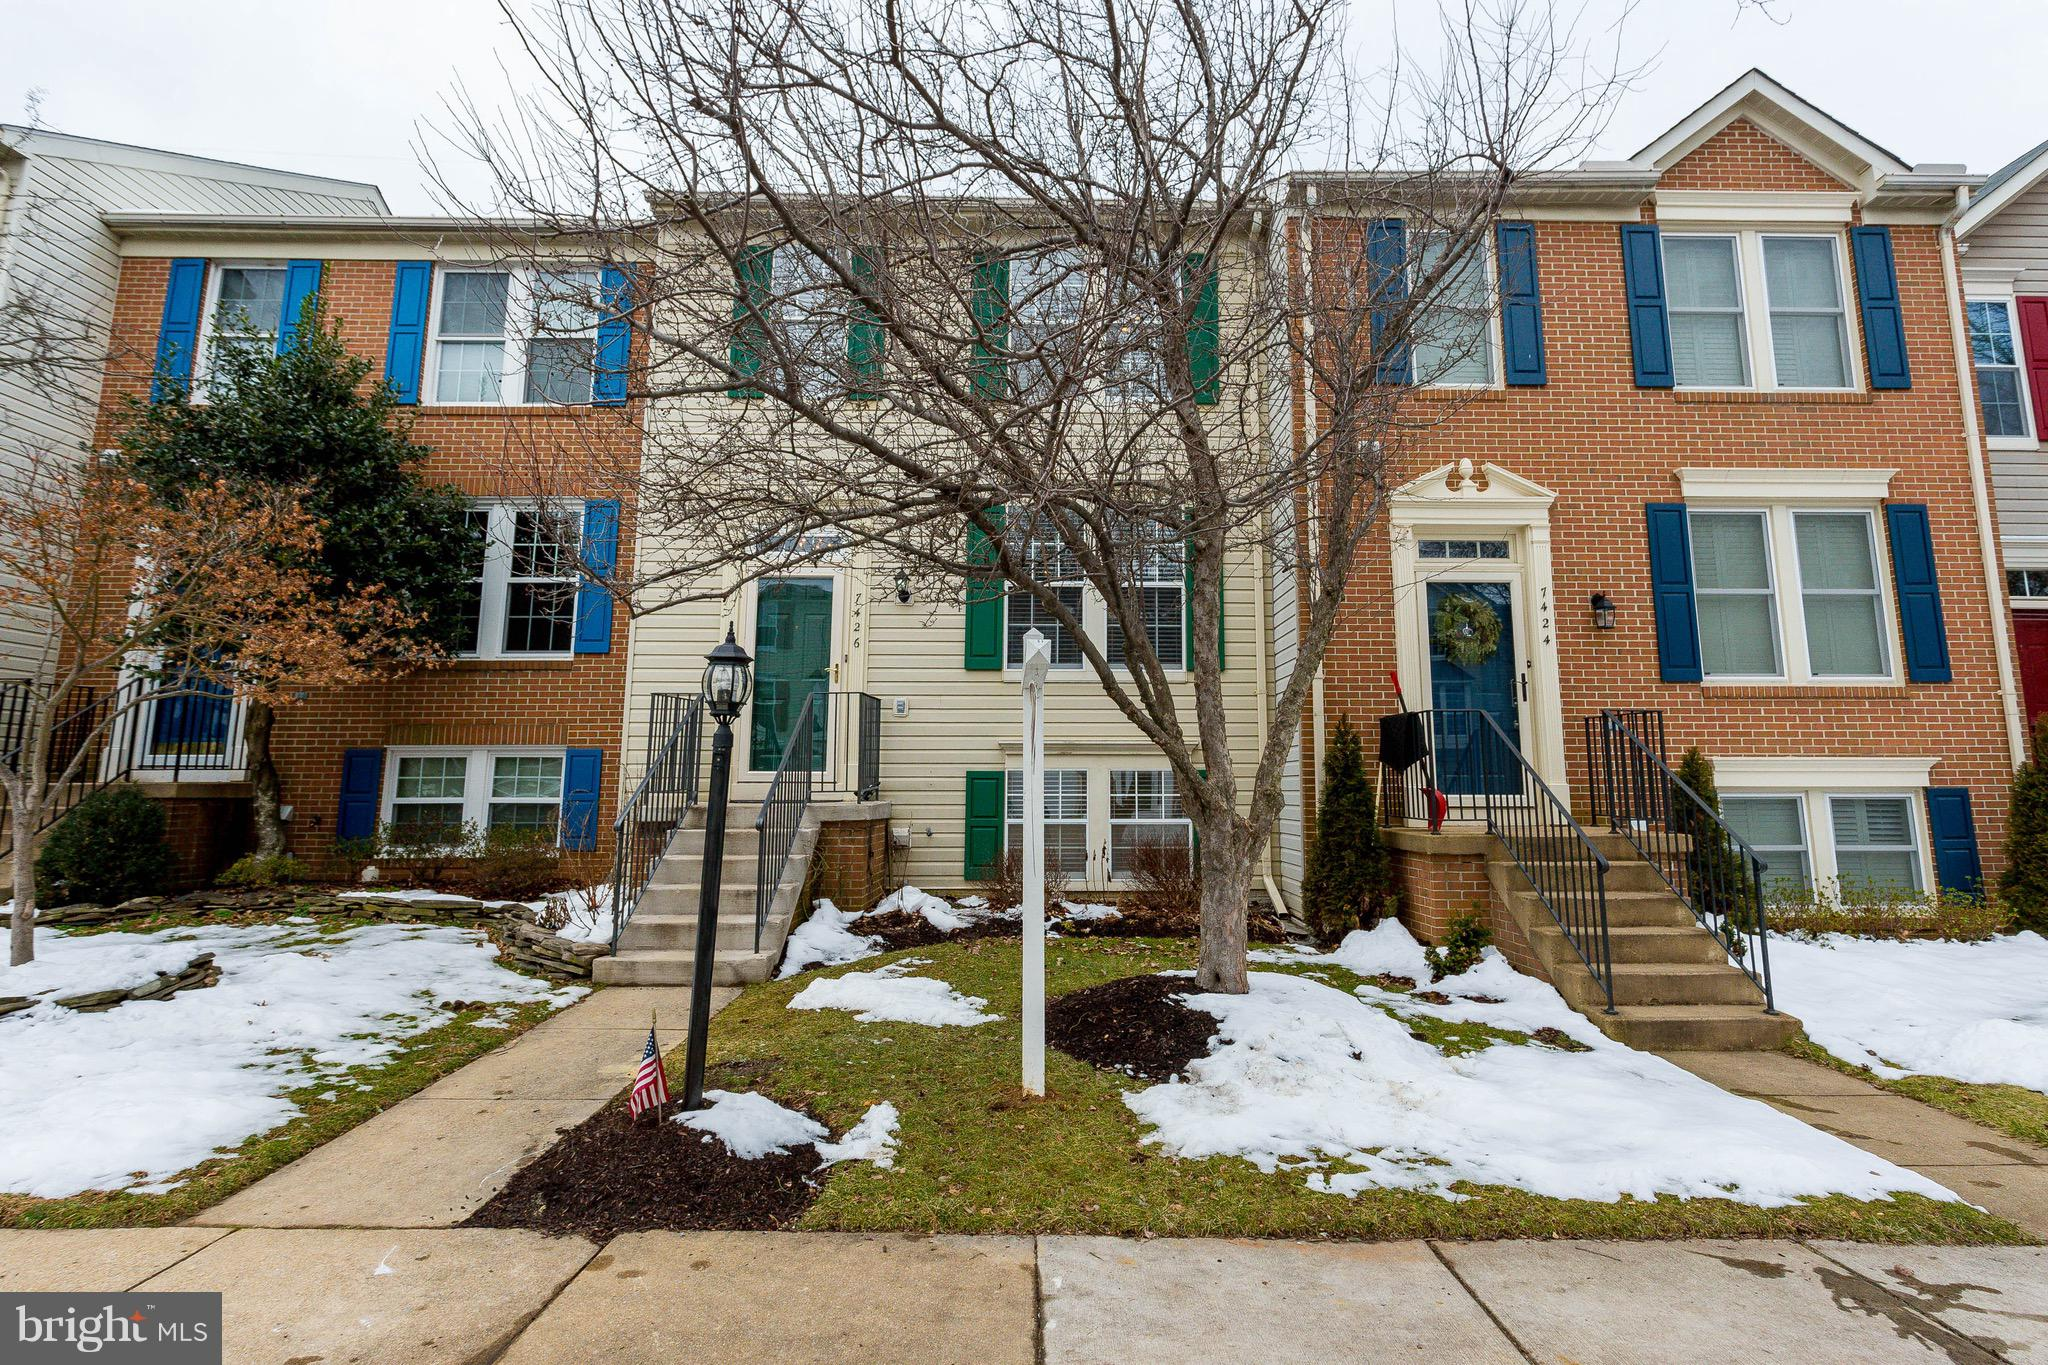 Open and airy townhouse, sure to impress. Gleaming kitchen with stainless steel appliances and granite countertops, hardwood floor living area transitions into a newly tiled kitchen, and new paint throughout this charmer. 3 BRs and 3.5 baths on 3 levels. Awesome finished basement with fireplace, built-in bookcases and a den/4th BR. The deck, located off the kitchen that hovers over a fenced back yard, is perfect for grilling and dining out in the open air.  Natural light floods each level, including the walk-out basement which boasts full sized windows. Turn key ready! New HVAC 2018. New roof 2017. New carpets, appliances and front and deck doors 2015. A commuter's dream:1 mile to the Franconia Springfield Metro (blue line), 2 miles to I-95/395/495 access ramp. Also, just a short walk of .4 miles to Lane Elementary School. Move right in. This one won't last.